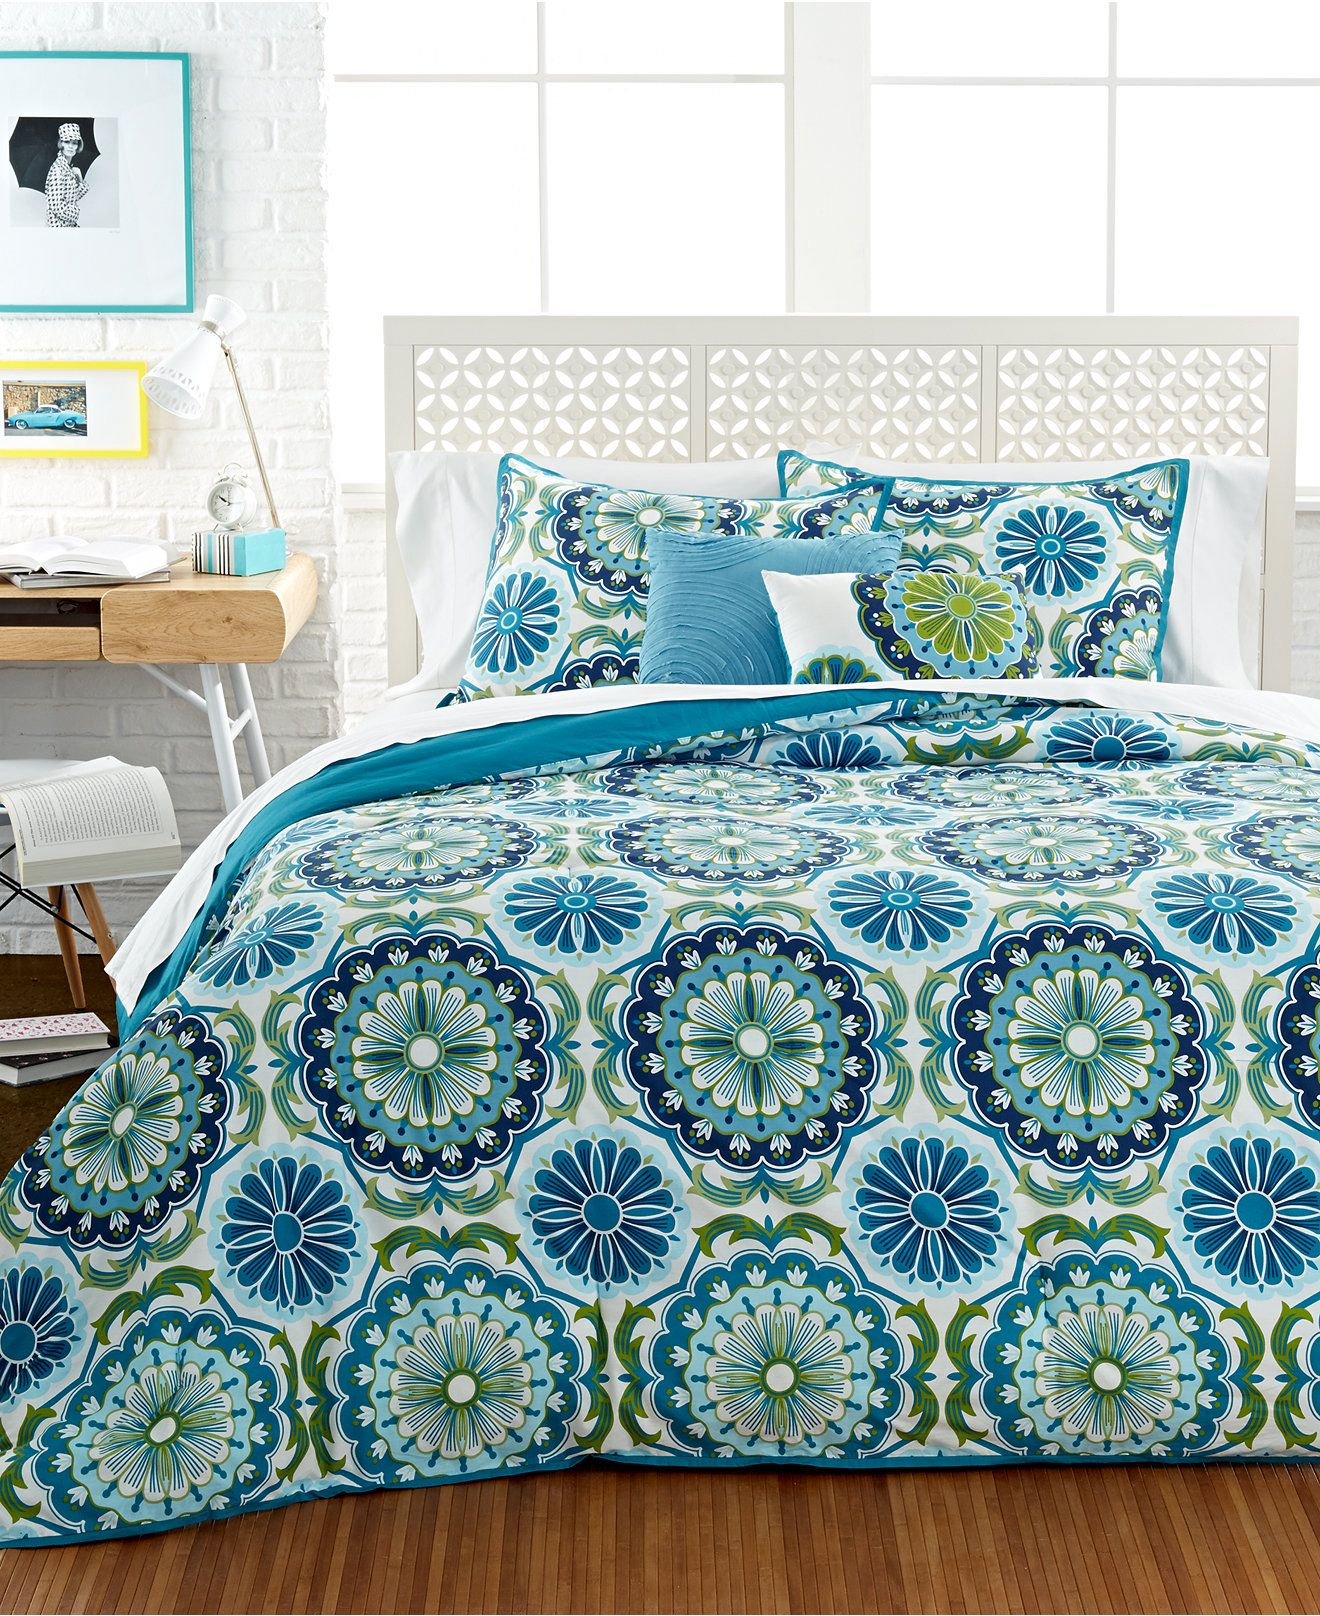 Design Comforters For Teens dahlia 5 piece comforter and duvet cover sets teen bedding bed bath